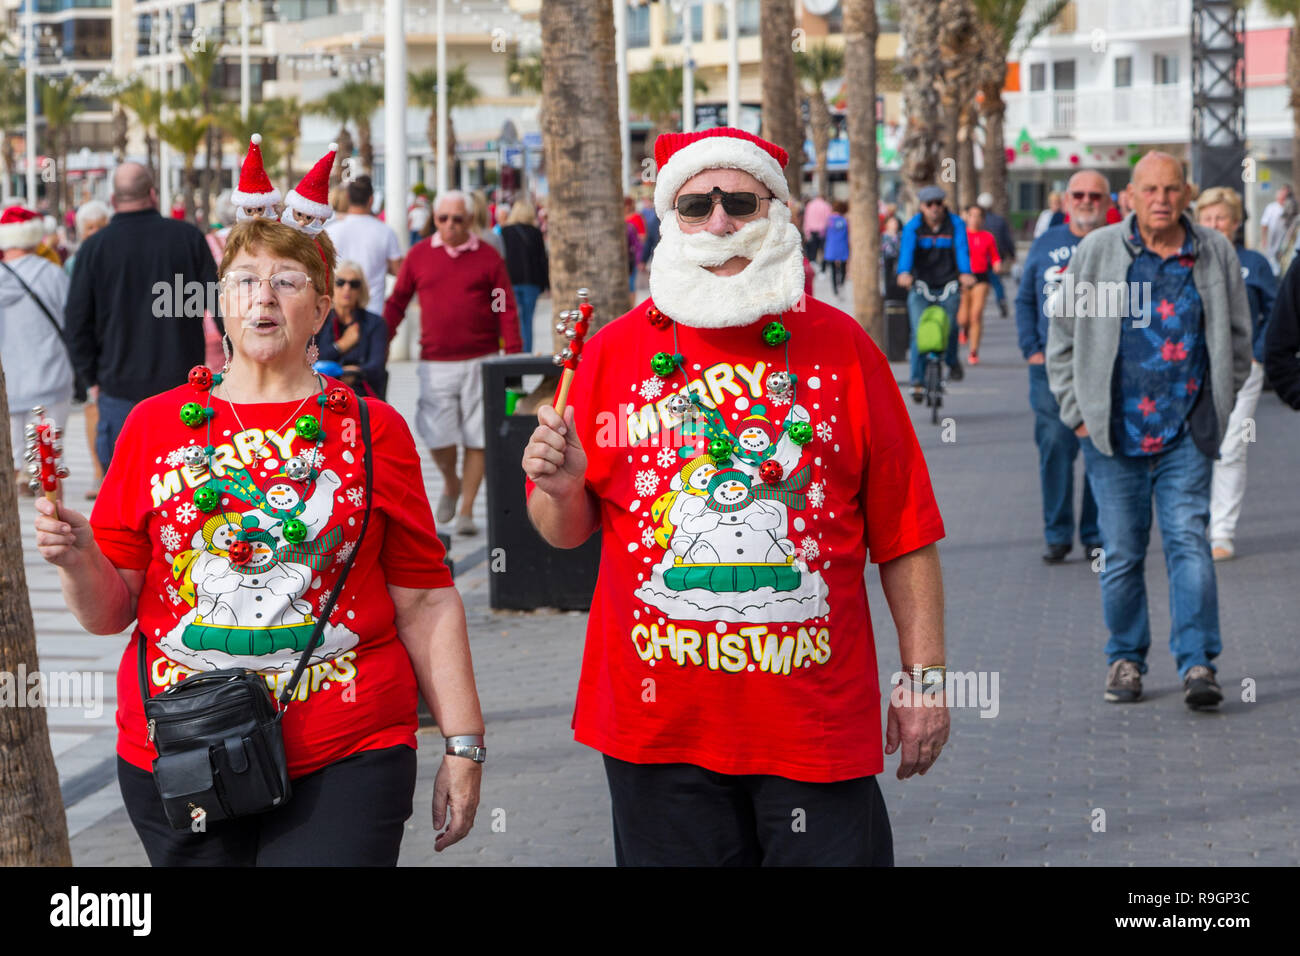 Benidorm, Costa Blanca, Spain, 25th December 2018. British tourists dress for the occasion on Christmas Day in this favourite getaway destination for Brits escaping the cold weather at home. Temperatures will be in the mid to high 20's Celsius today in this mediterranean hotspot. Couple wearing Christmas clothing and santa hats. Middle aged couple wearing bright red Christmas jumpers and hats, with santa beard waliking outside in sun. Stock Photo